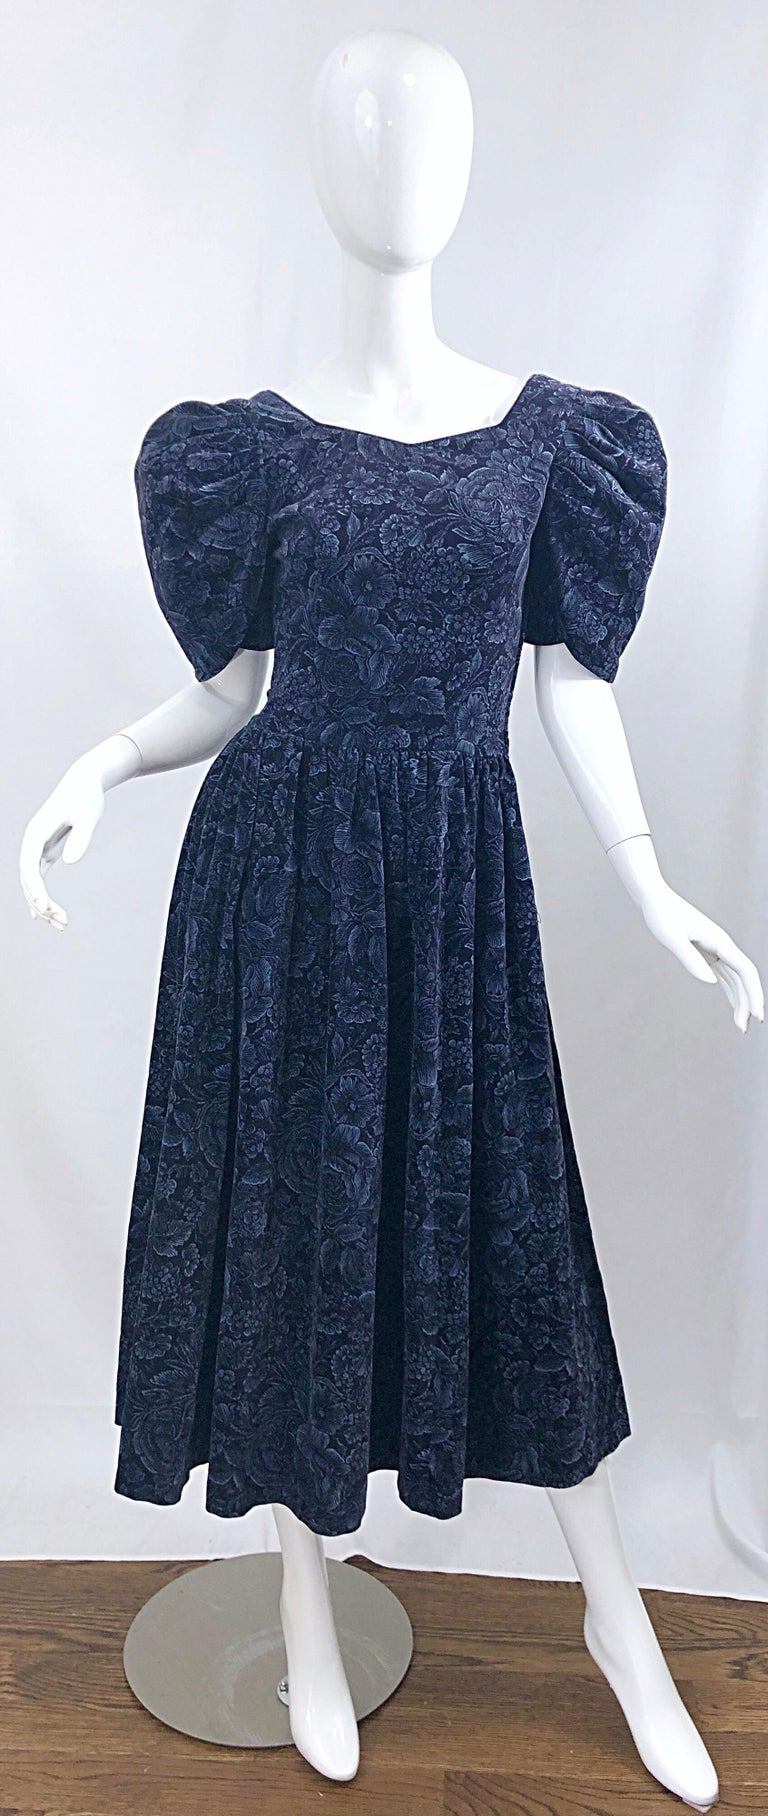 Chic early 1980s LAURA ASHLEY original Bathsheba Collection—So rare to find! Navy blue velvet open-back flower print mid dress! Features puff sleeves that add just the right amount of extra volume. Hidden zipper up the back with hook-and-eye